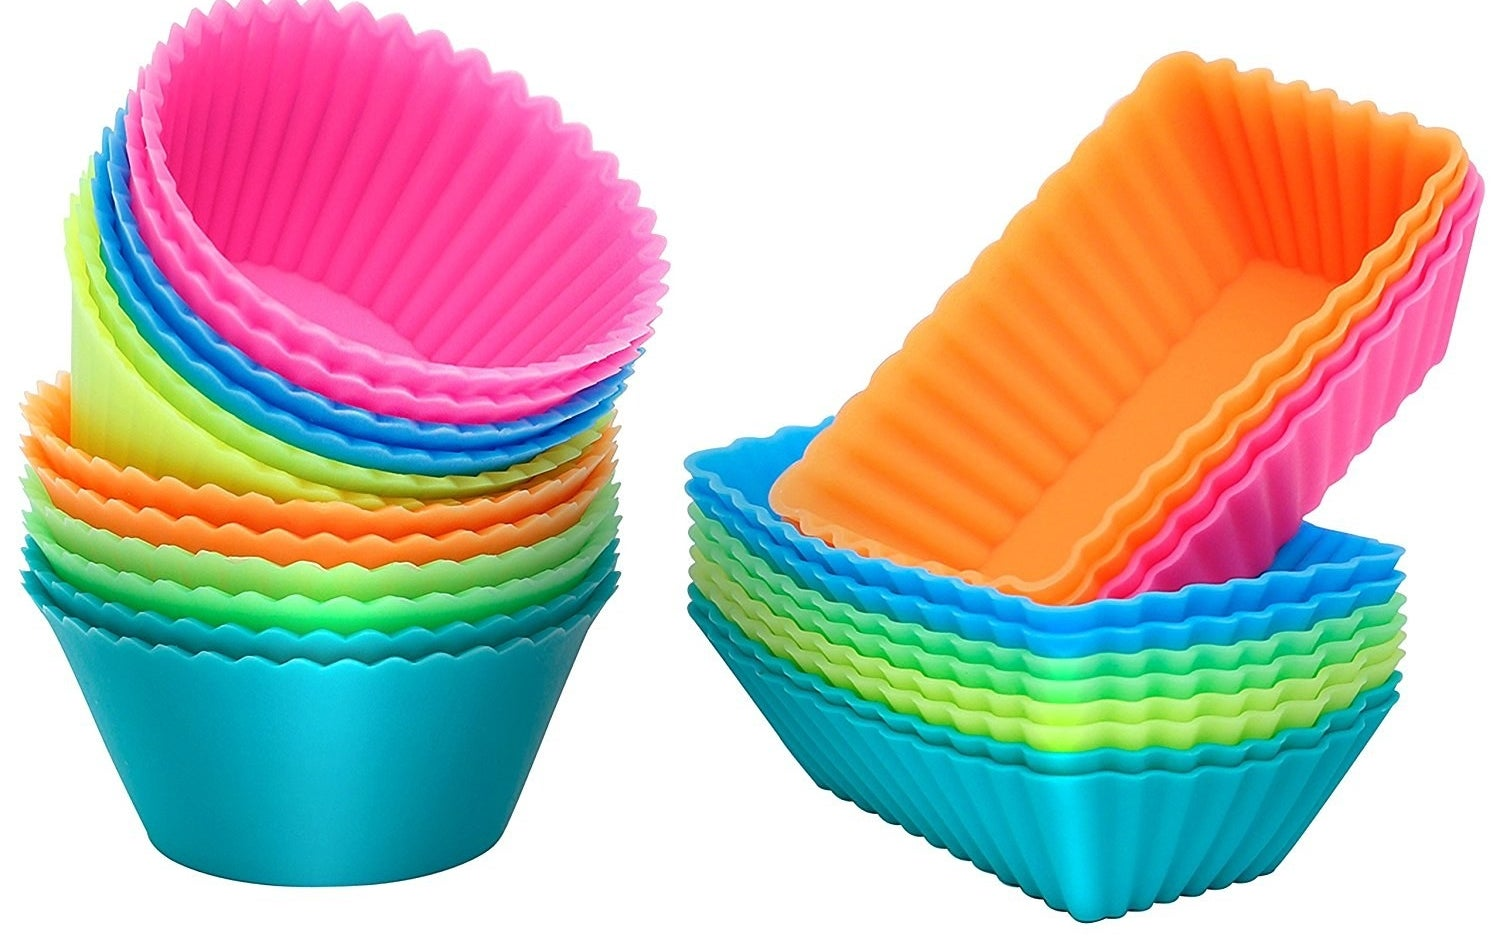 Includes 12 rectangular silicone baking cups and 12 round silicone baking cups. They're BPA-free and FDA-approved and safe in temperatures between -40 to 446 degrees F. They're safe to use in the oven, refrigerator, freezer, microwave, steamer, and dishwasher. They're also flexible, non-stick (no greasing or cooking spray needed!), don't require muffin trays — just pop onto a baking sheet), and re-usable!.Get them from Walmart for $11.97 (originally $47.99).